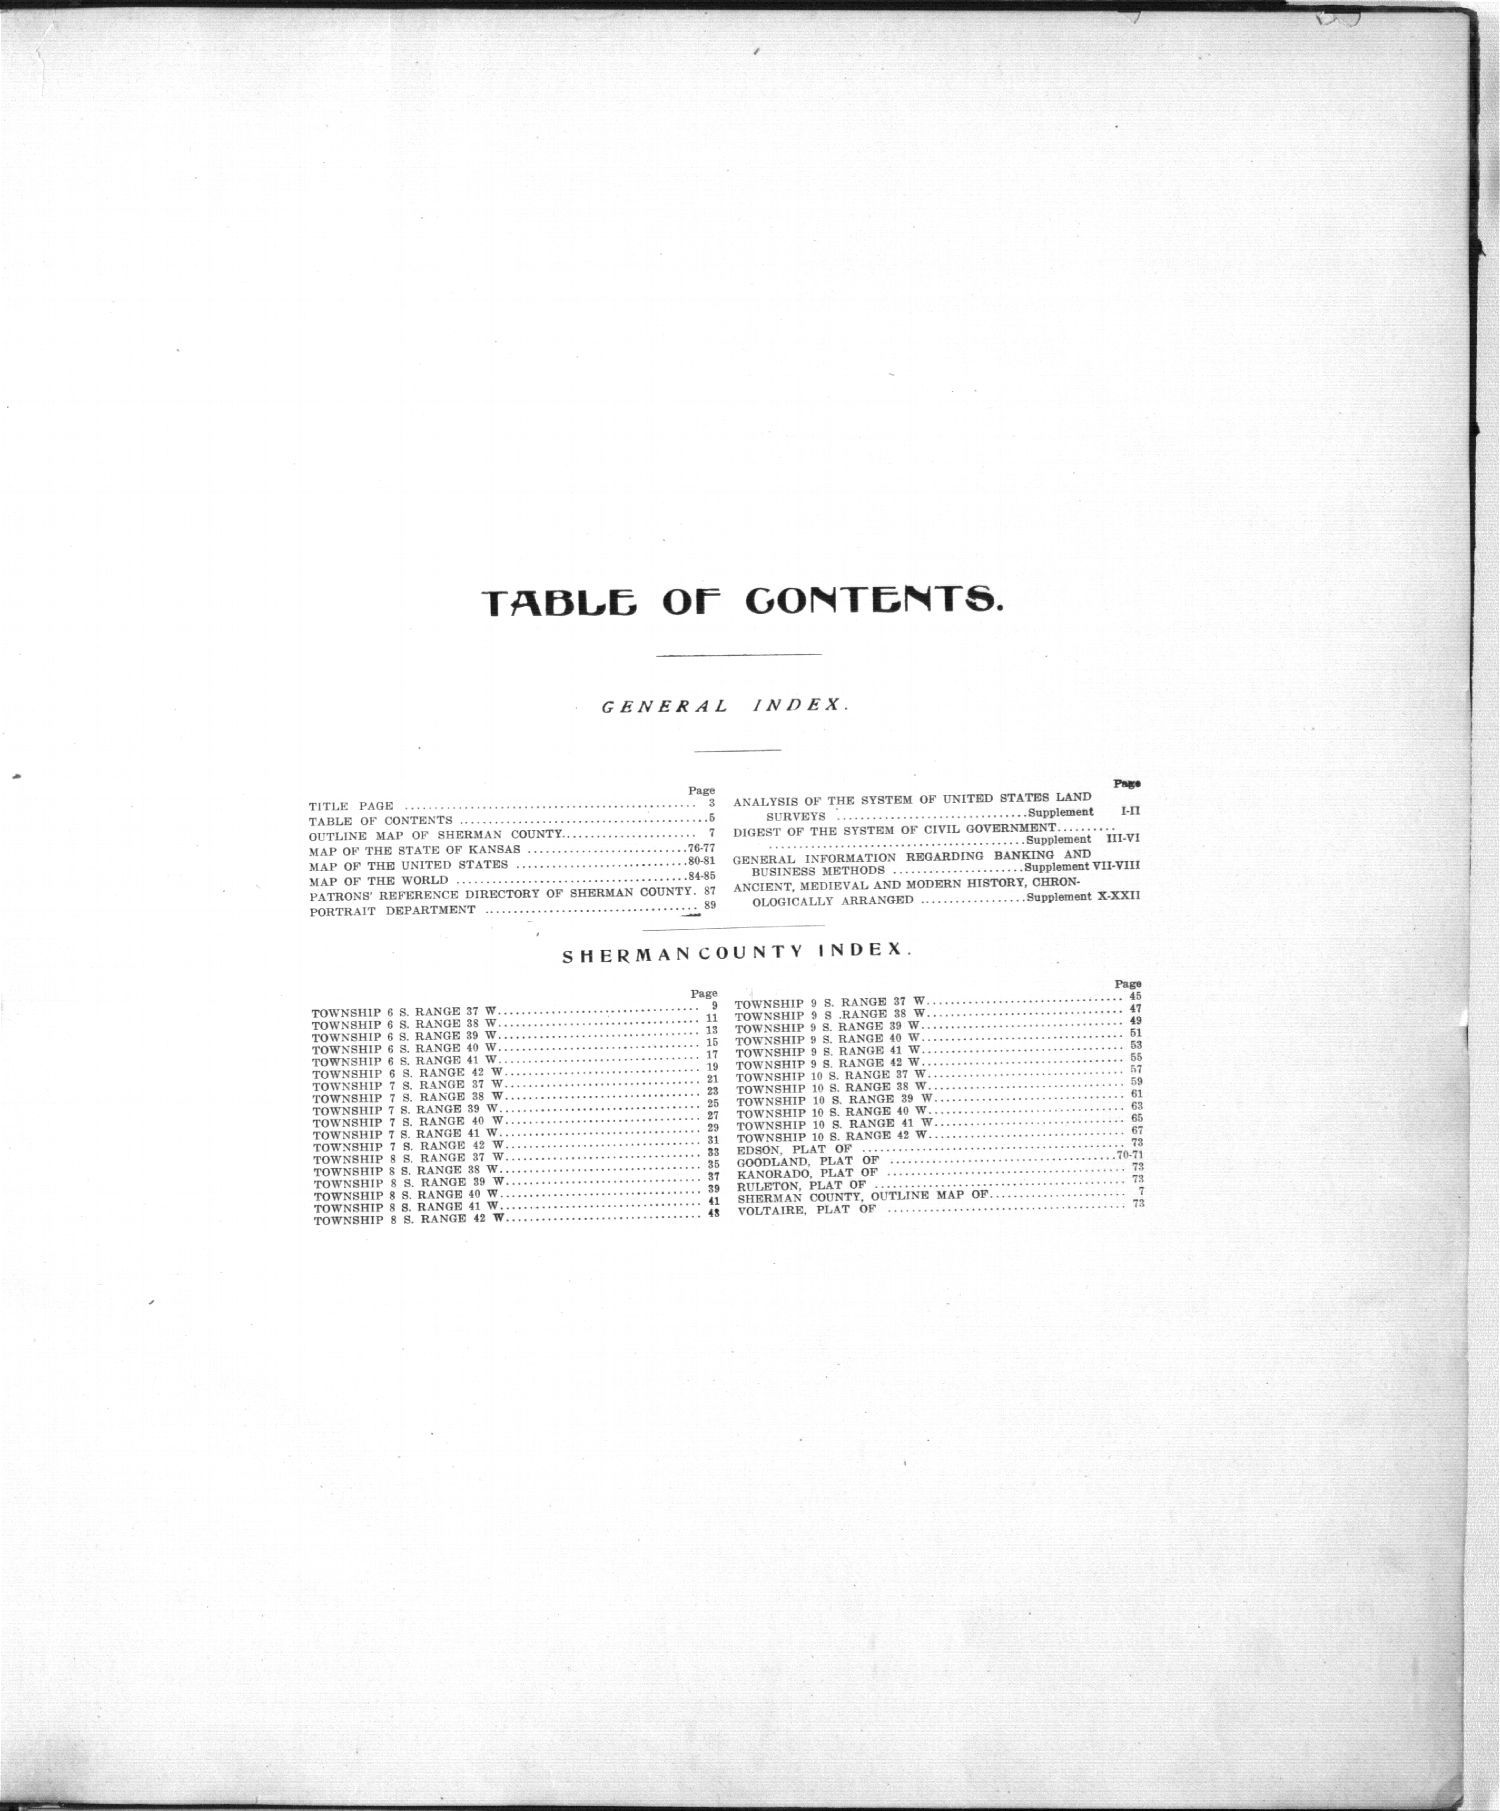 Standard atlas of Sherman County, Kansas - Table of Contents